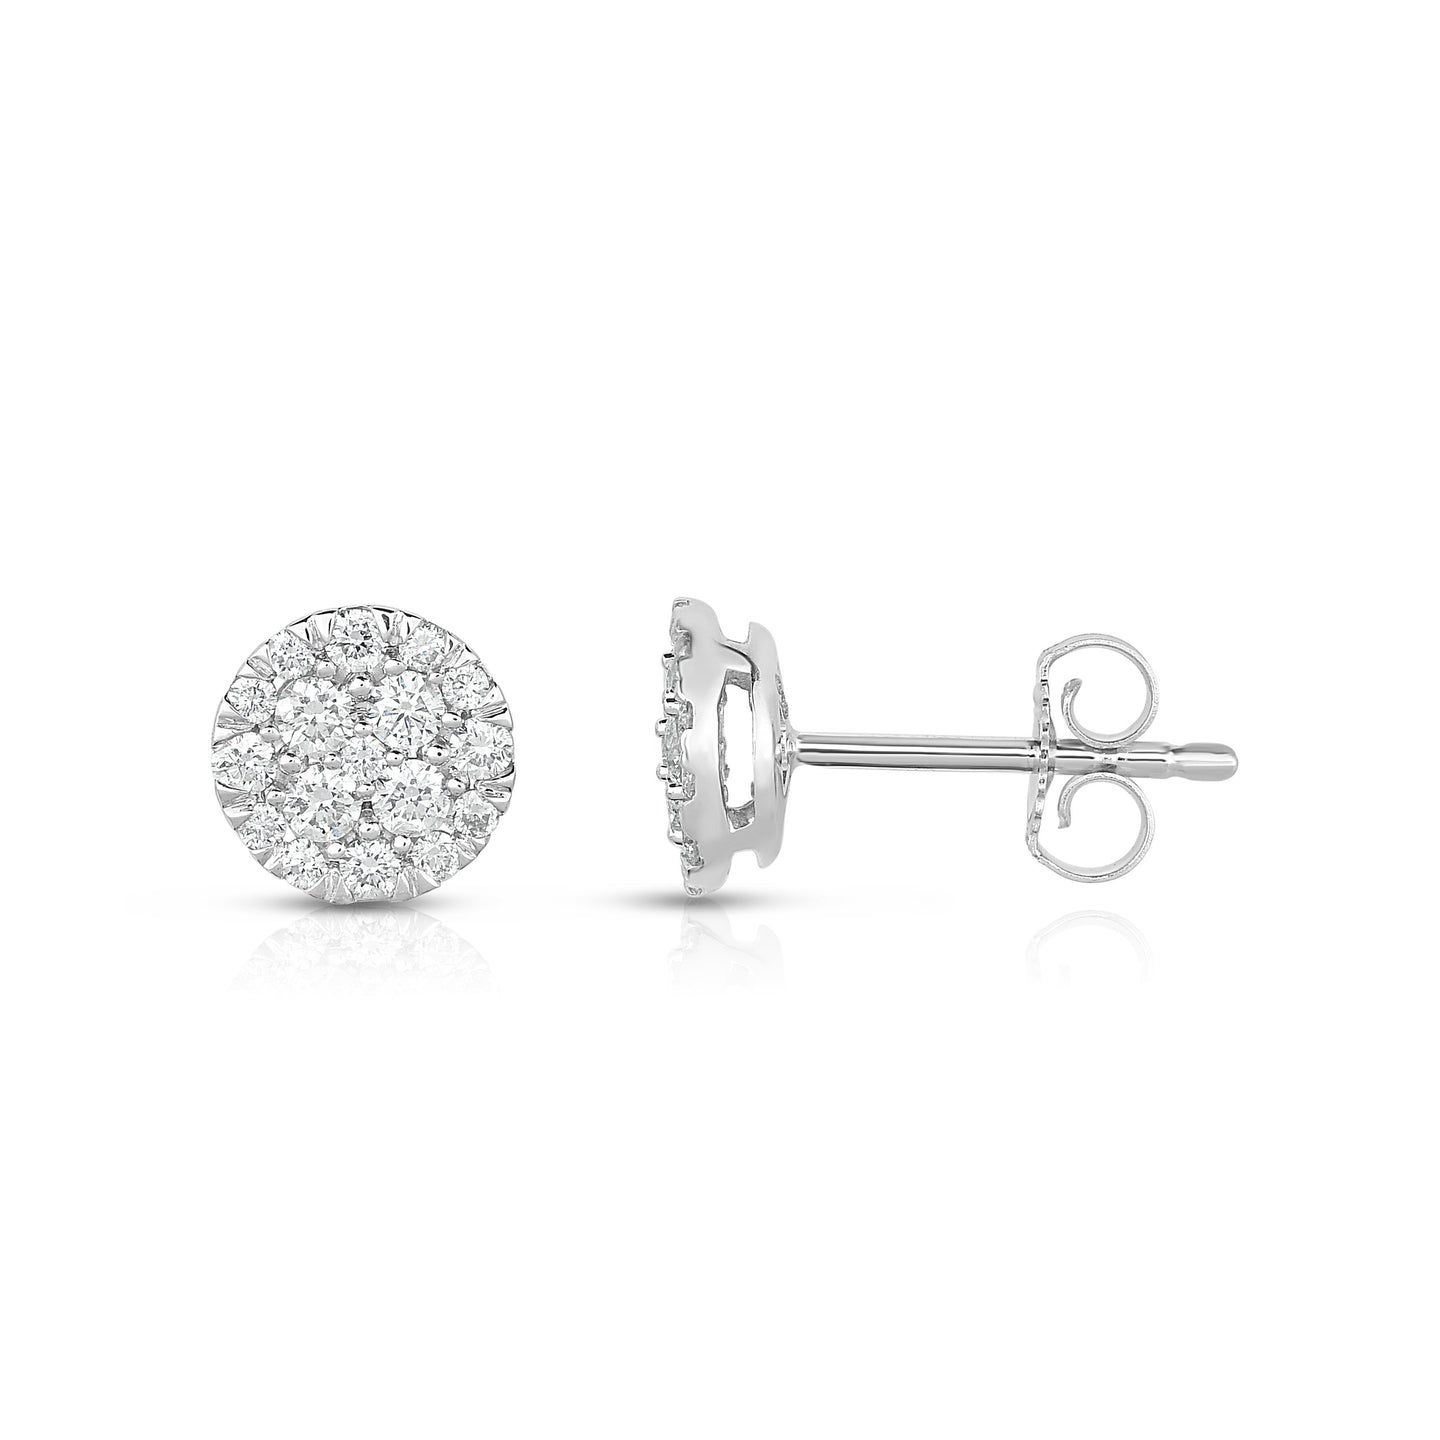 Sabel Collection 14K White Gold Round Diamond Cluster Stud Earrings